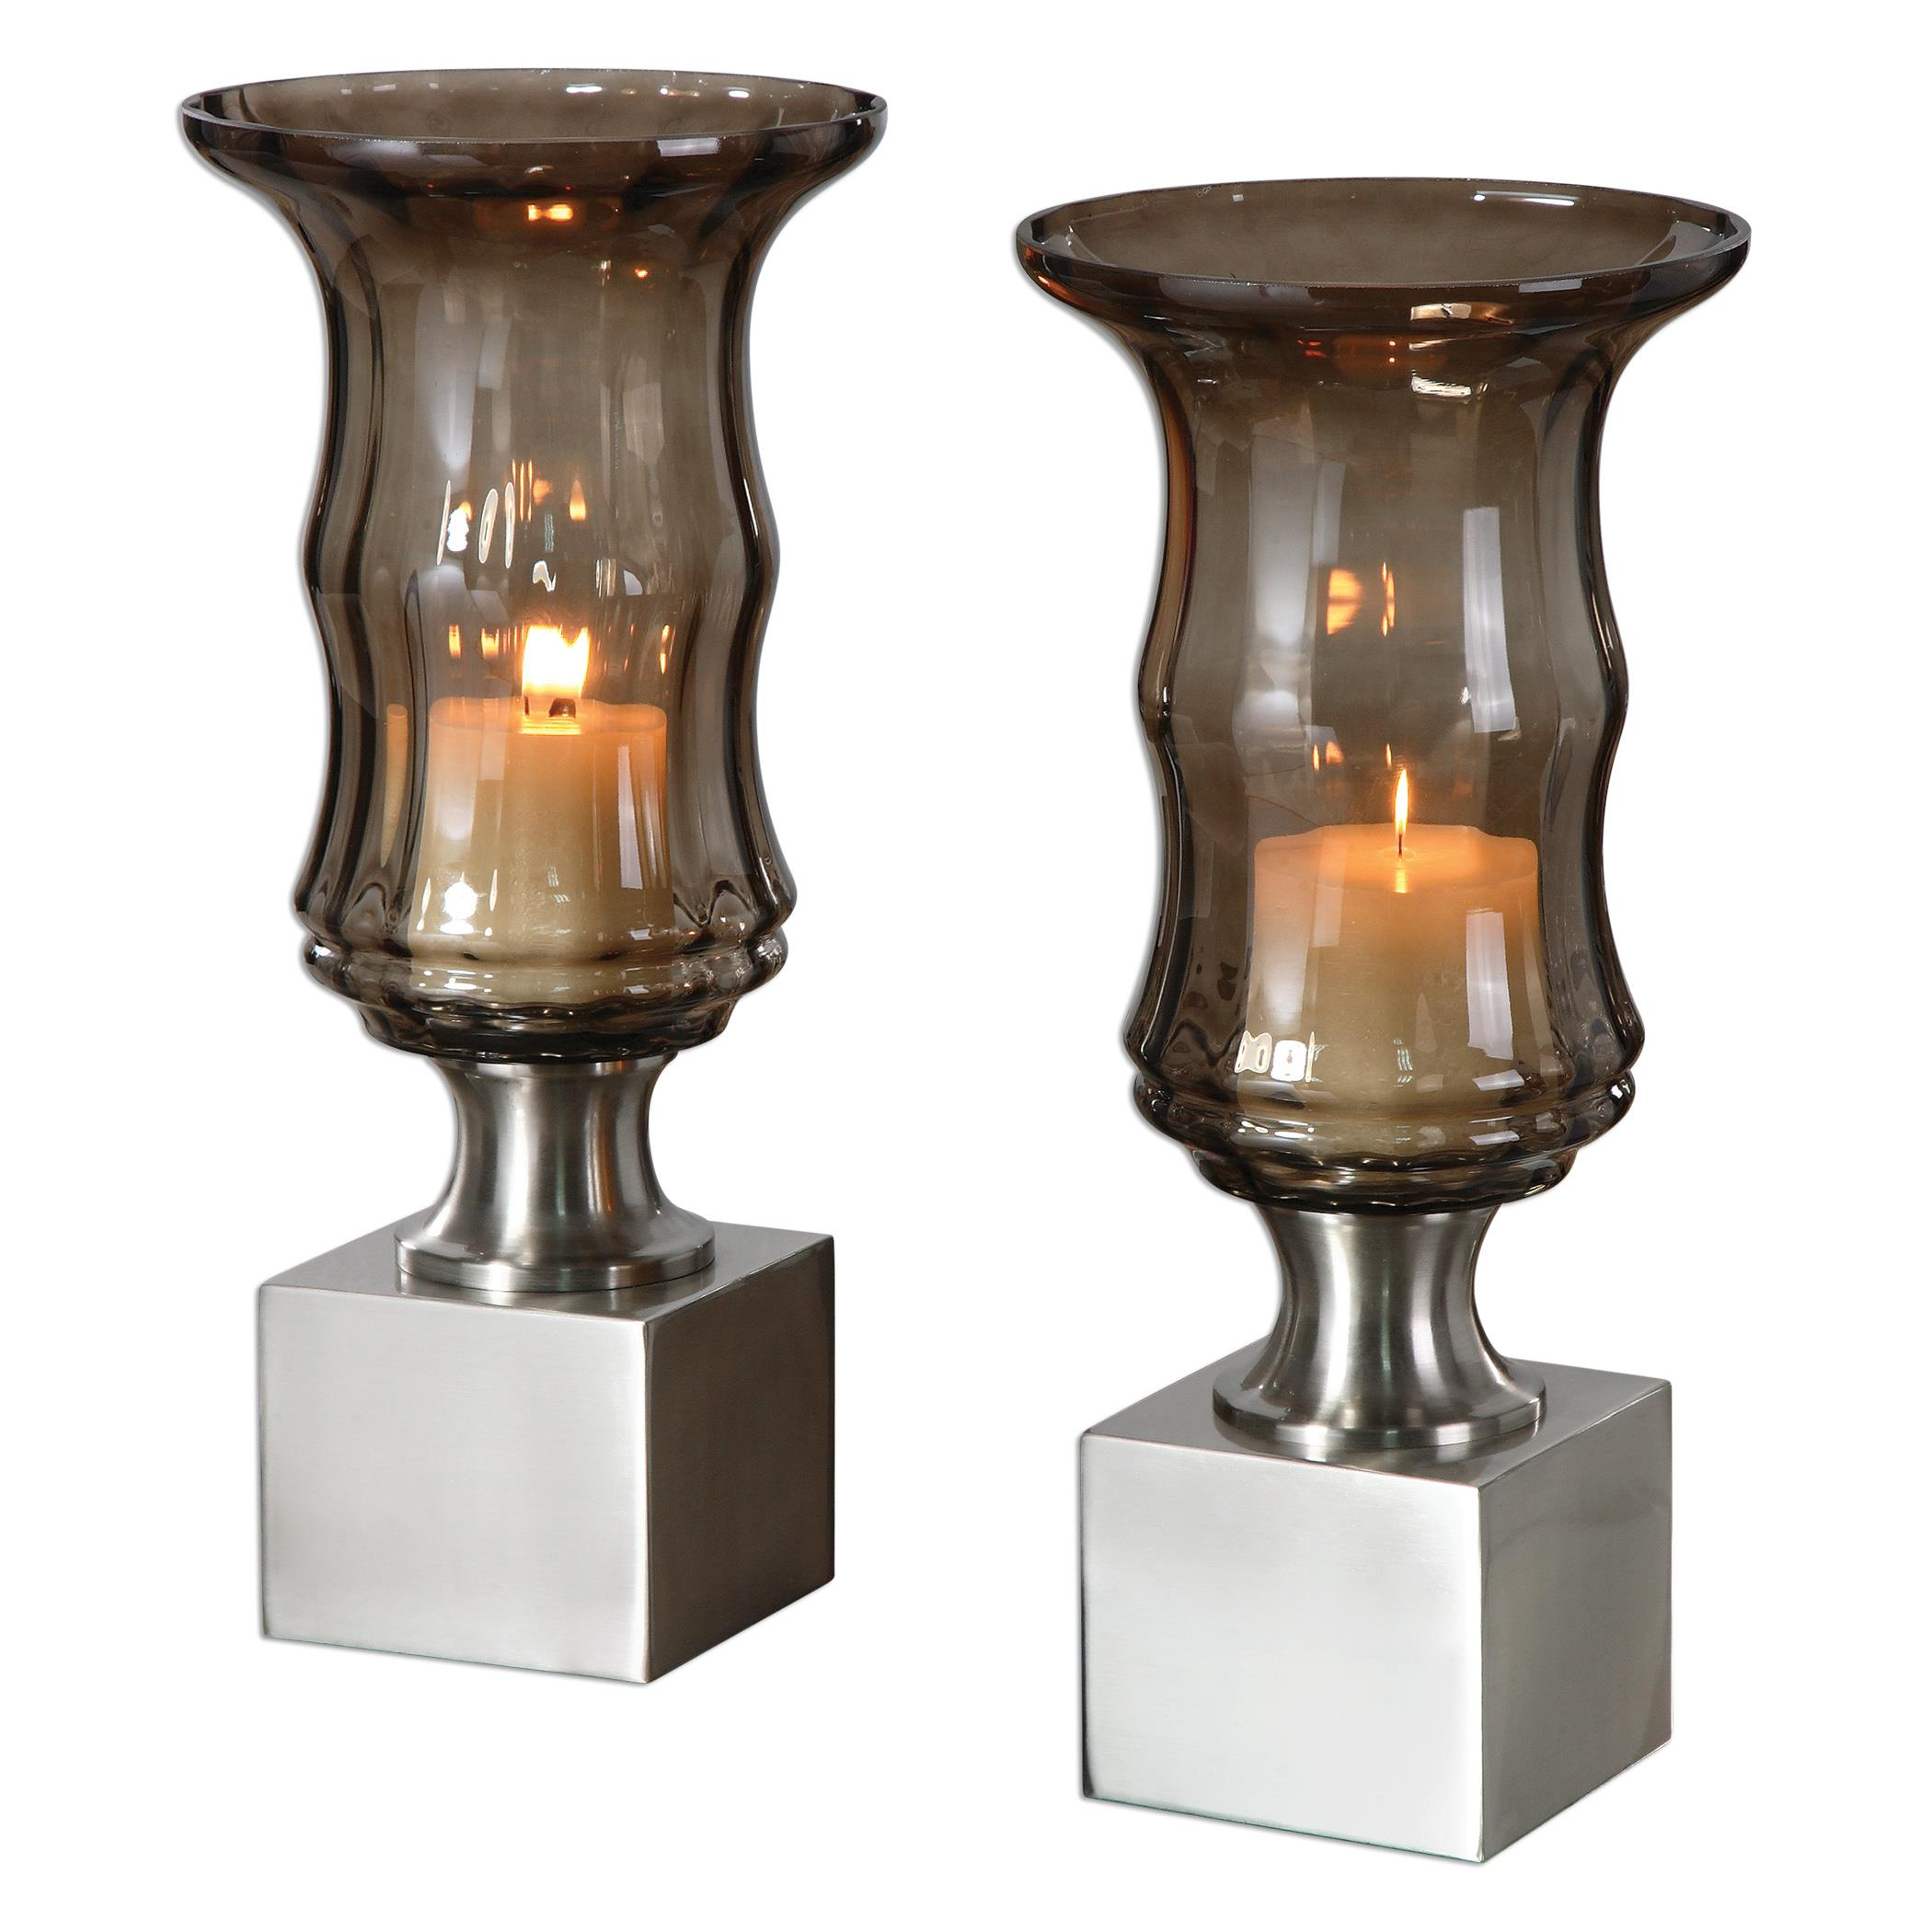 Uttermost Accessories Araby Smoked Glass Candleholders, S/2 - Item Number: 19998